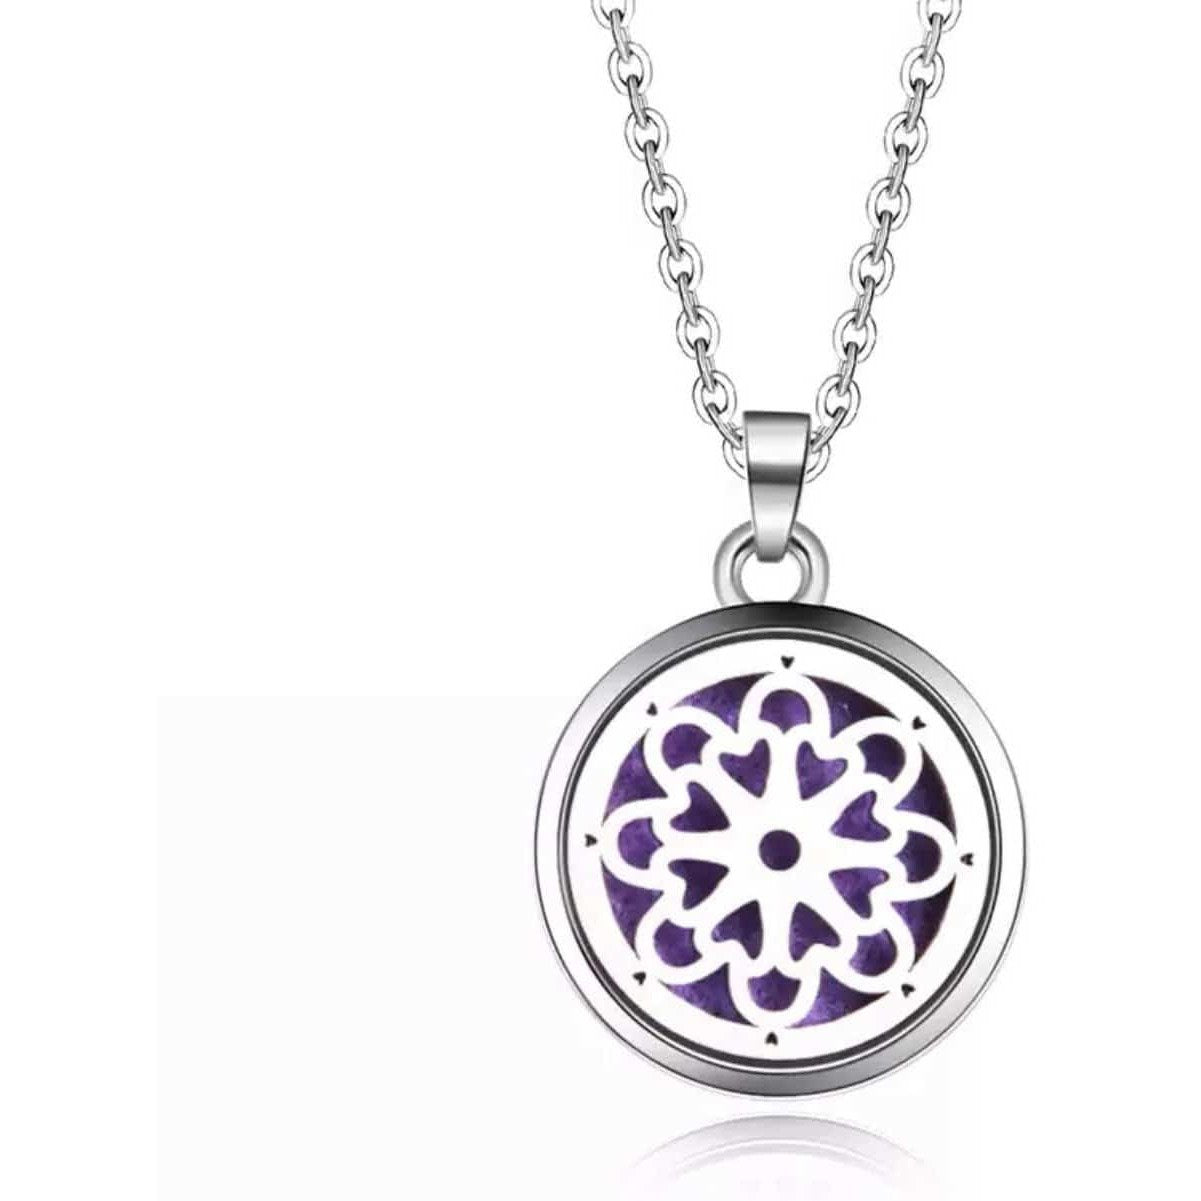 Aromatherapy Diffusing Necklace (Ameba) - Your Oil Tools